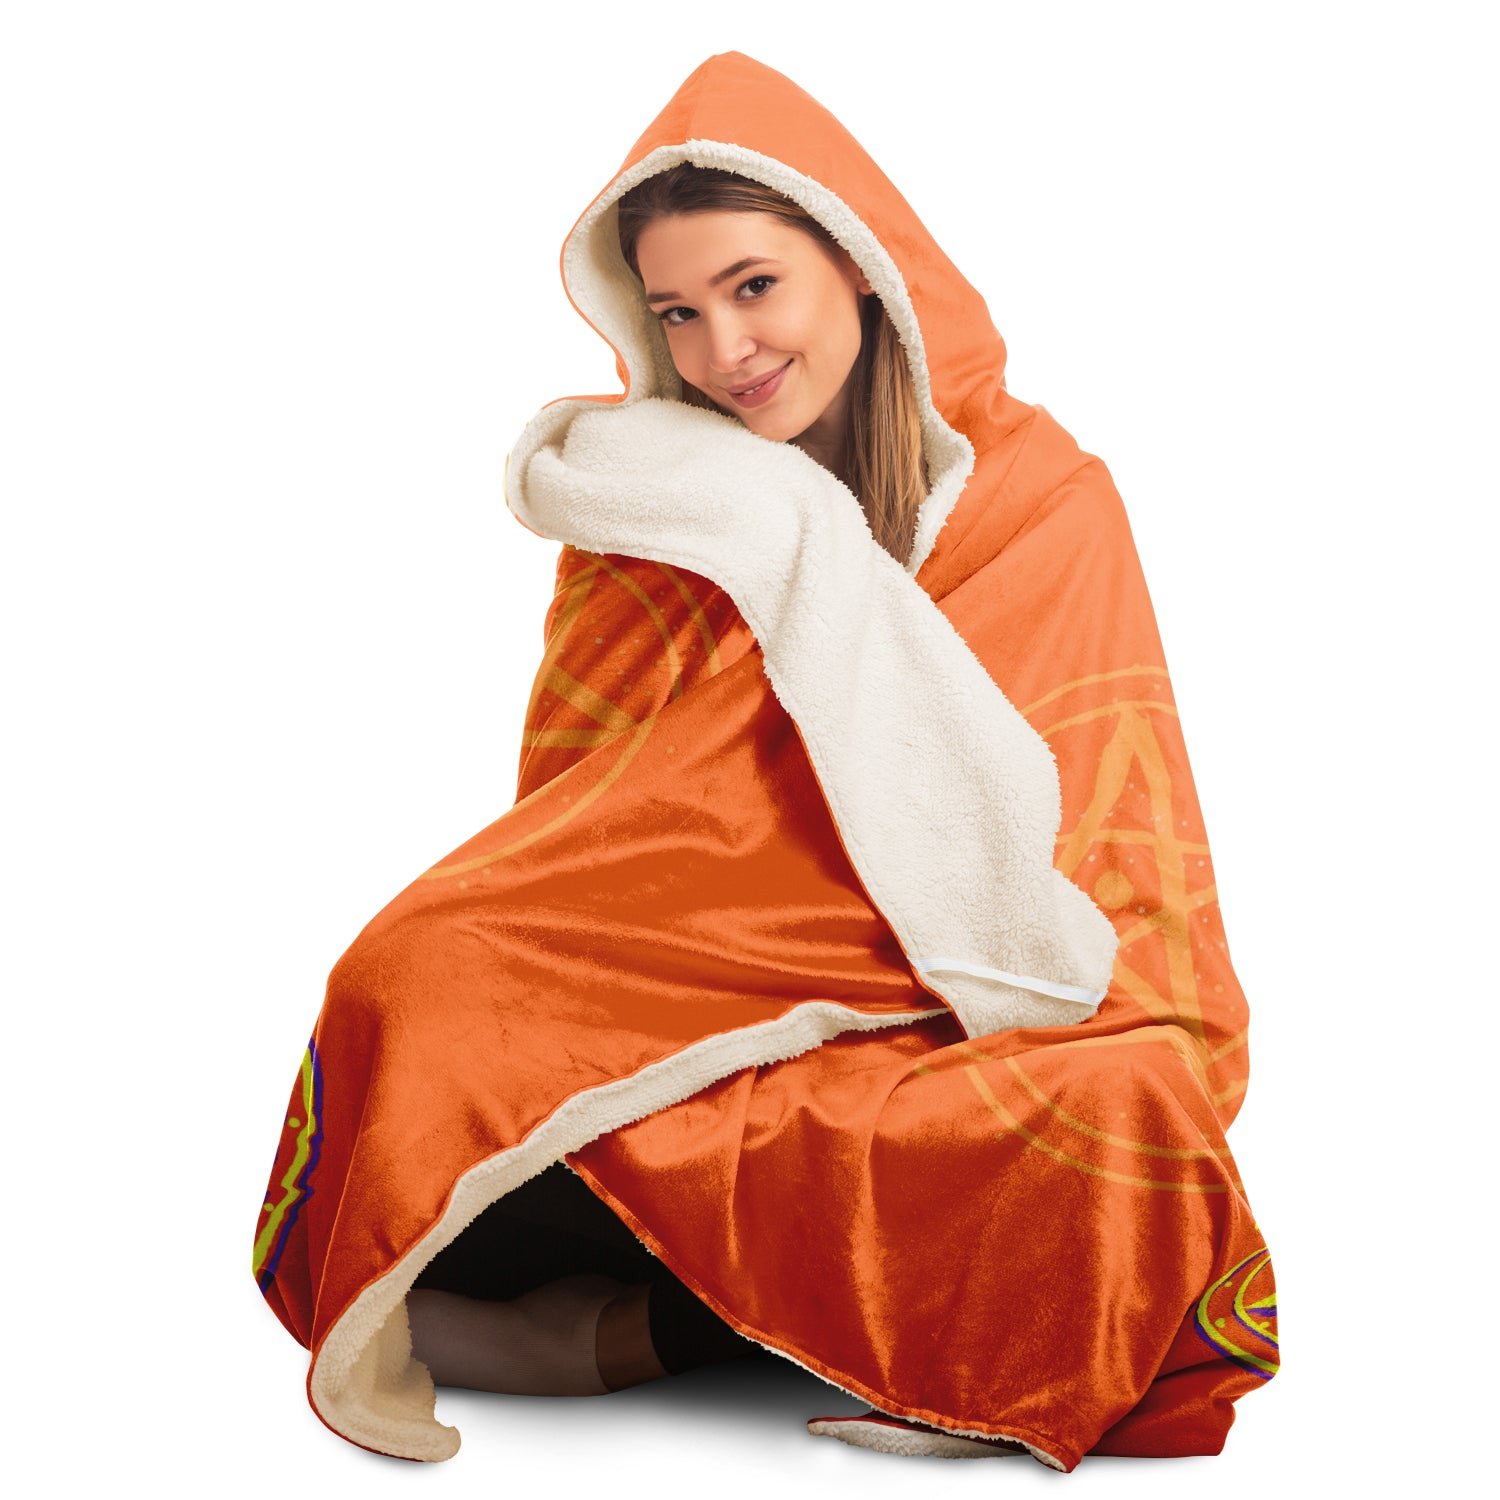 Baphomet 3D Hooded Blanket - Orange